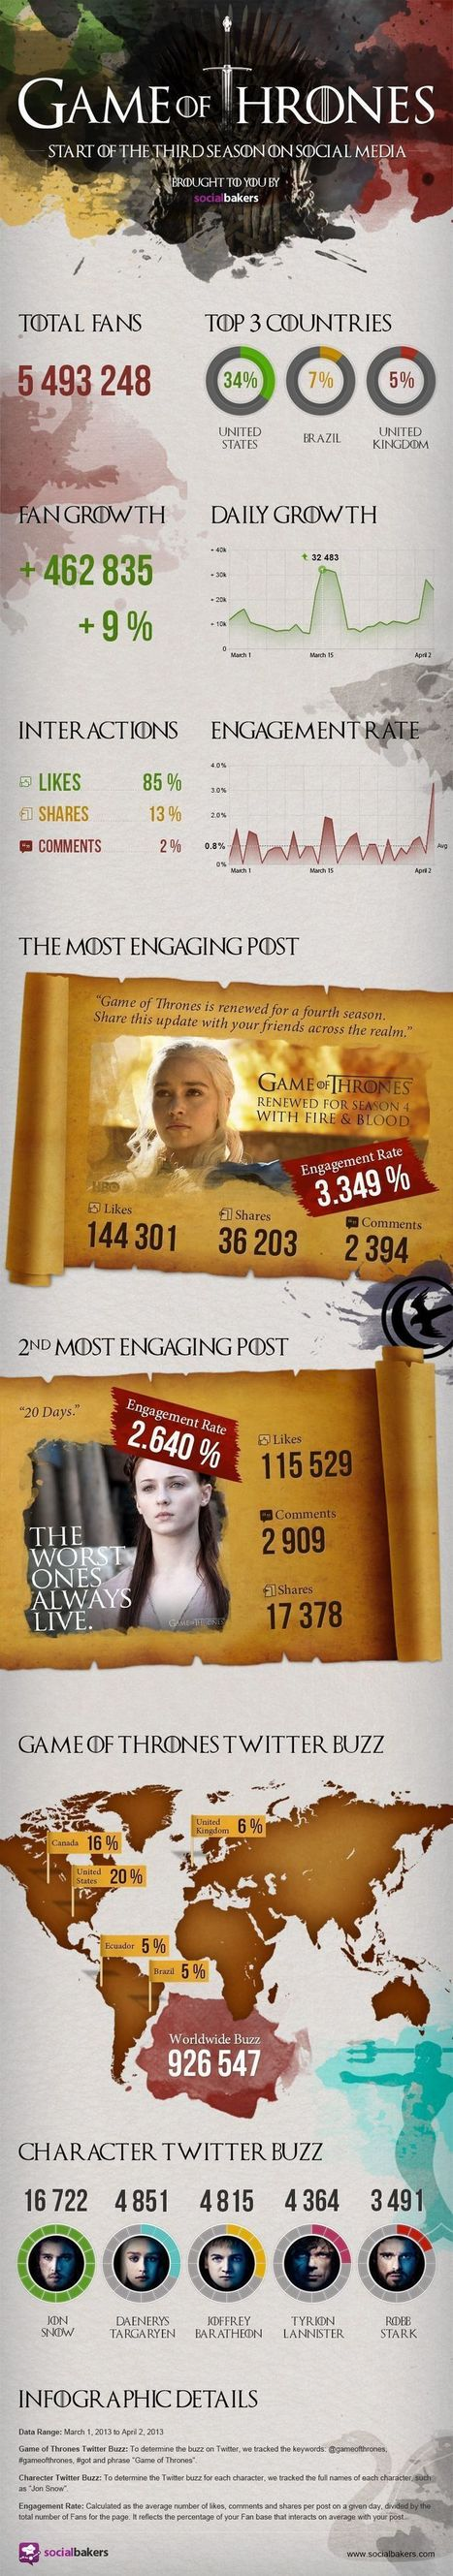 Infographic : Game of Thrones on Social Media | 3D animation transmedia | Scoop.it